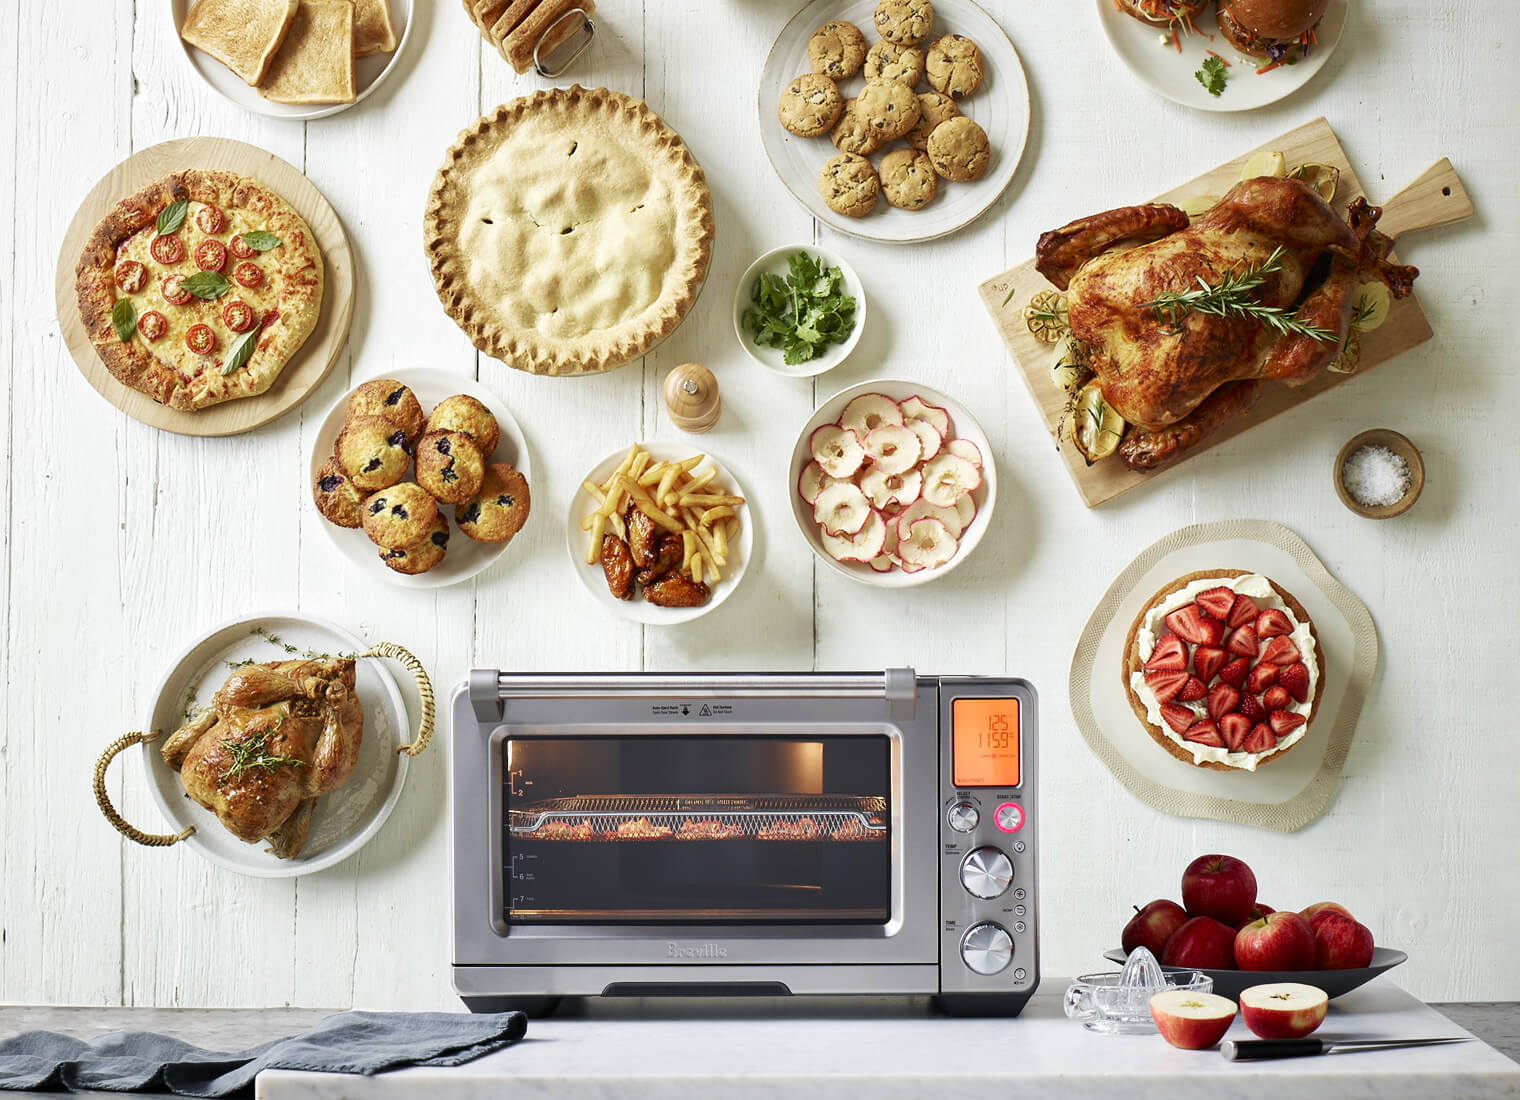 MadeO-Images-Half-BrevilleLifestyle4